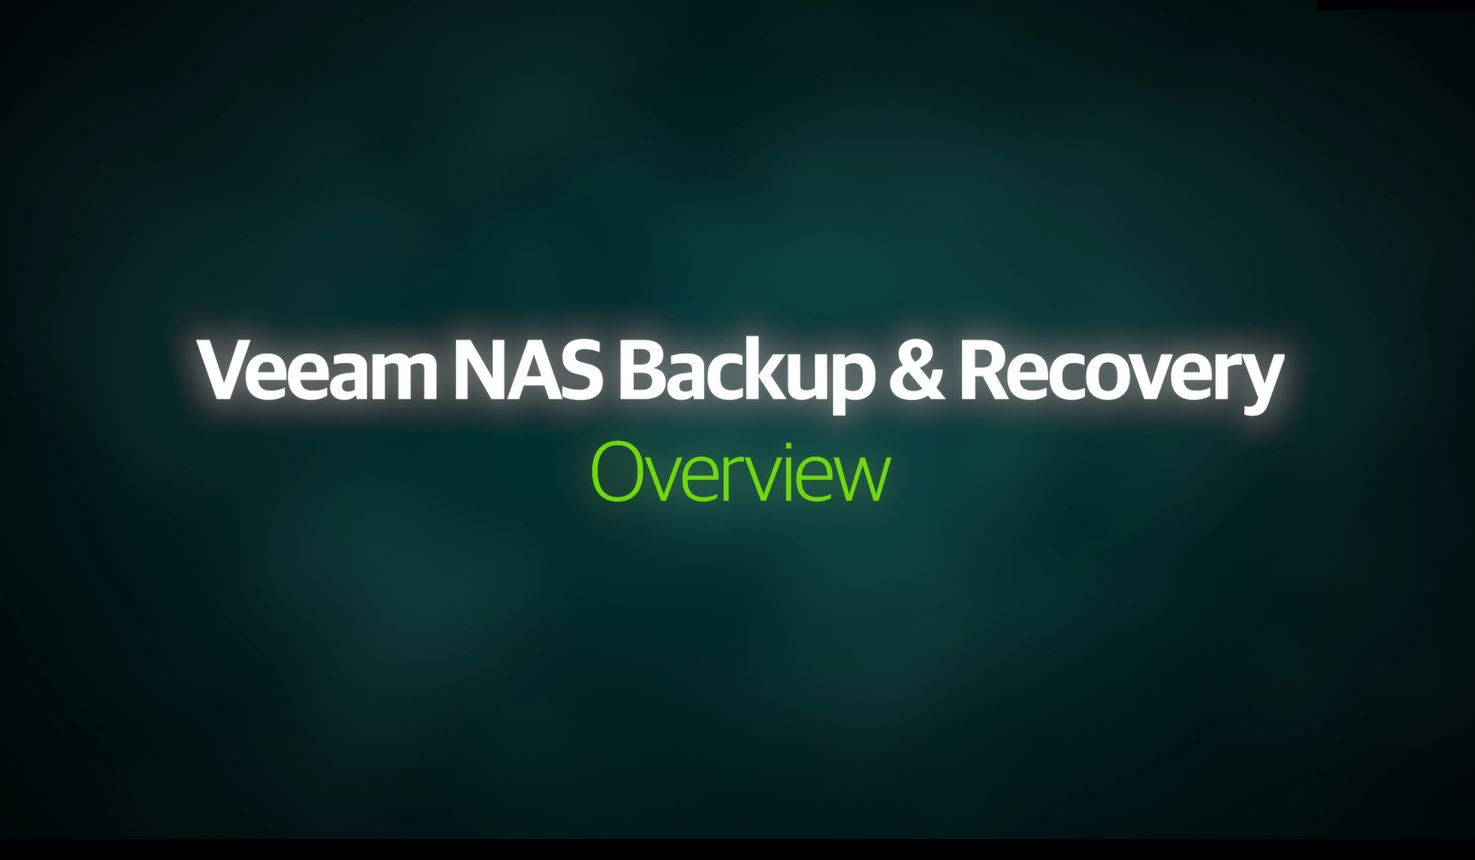 Backup y recuperación de NAS de Veeam: descripción general